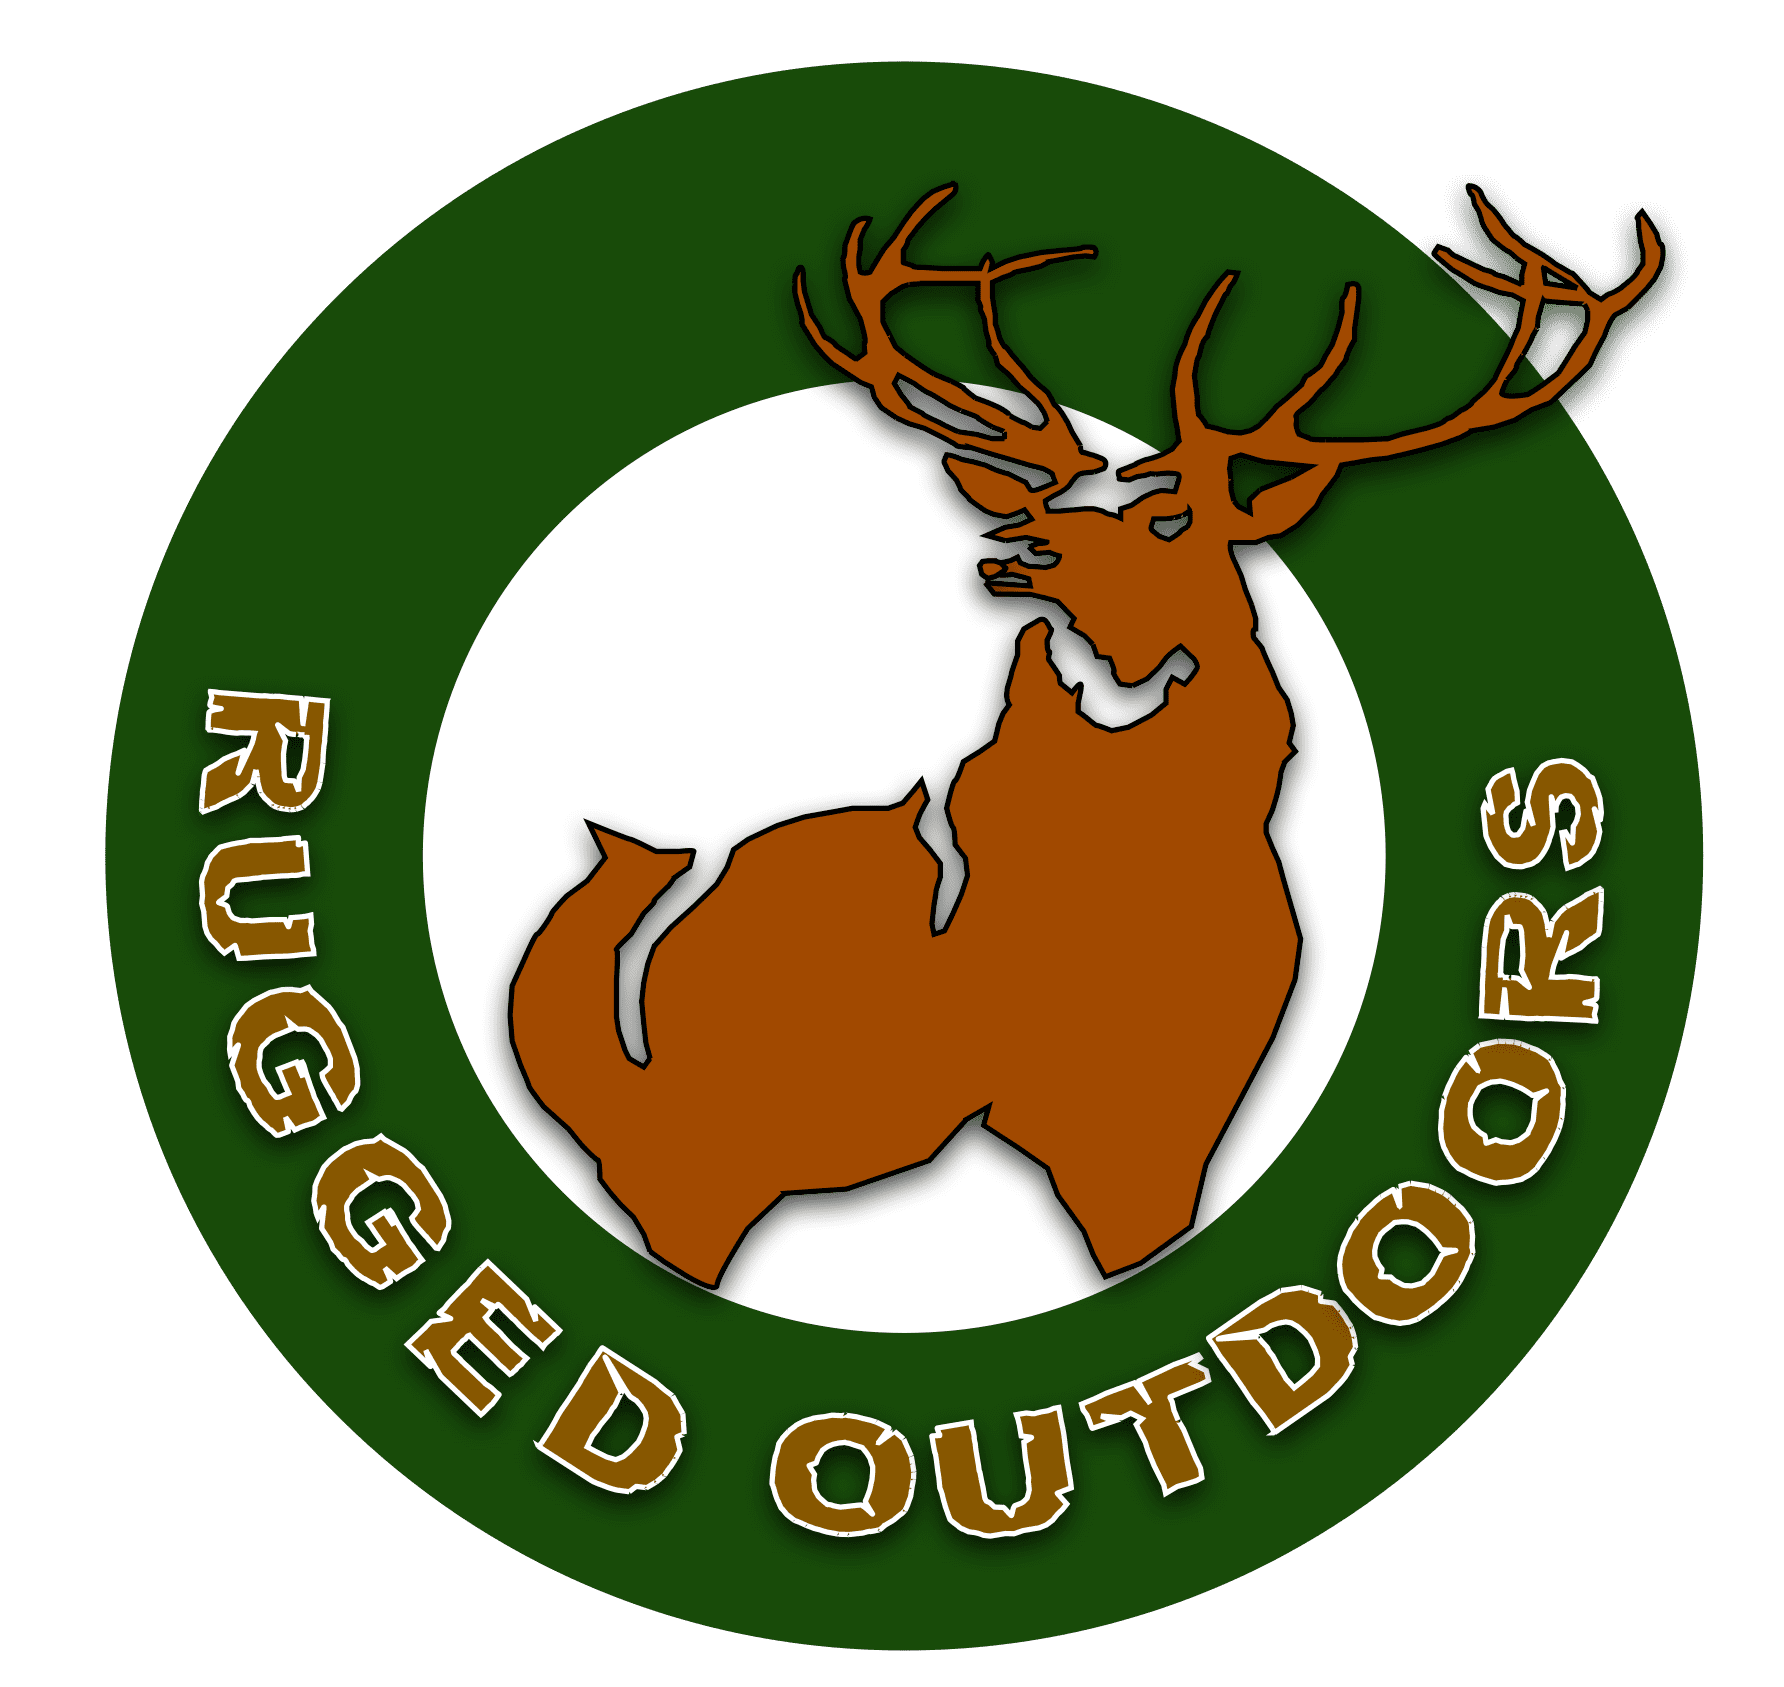 The Rugged Outdoors